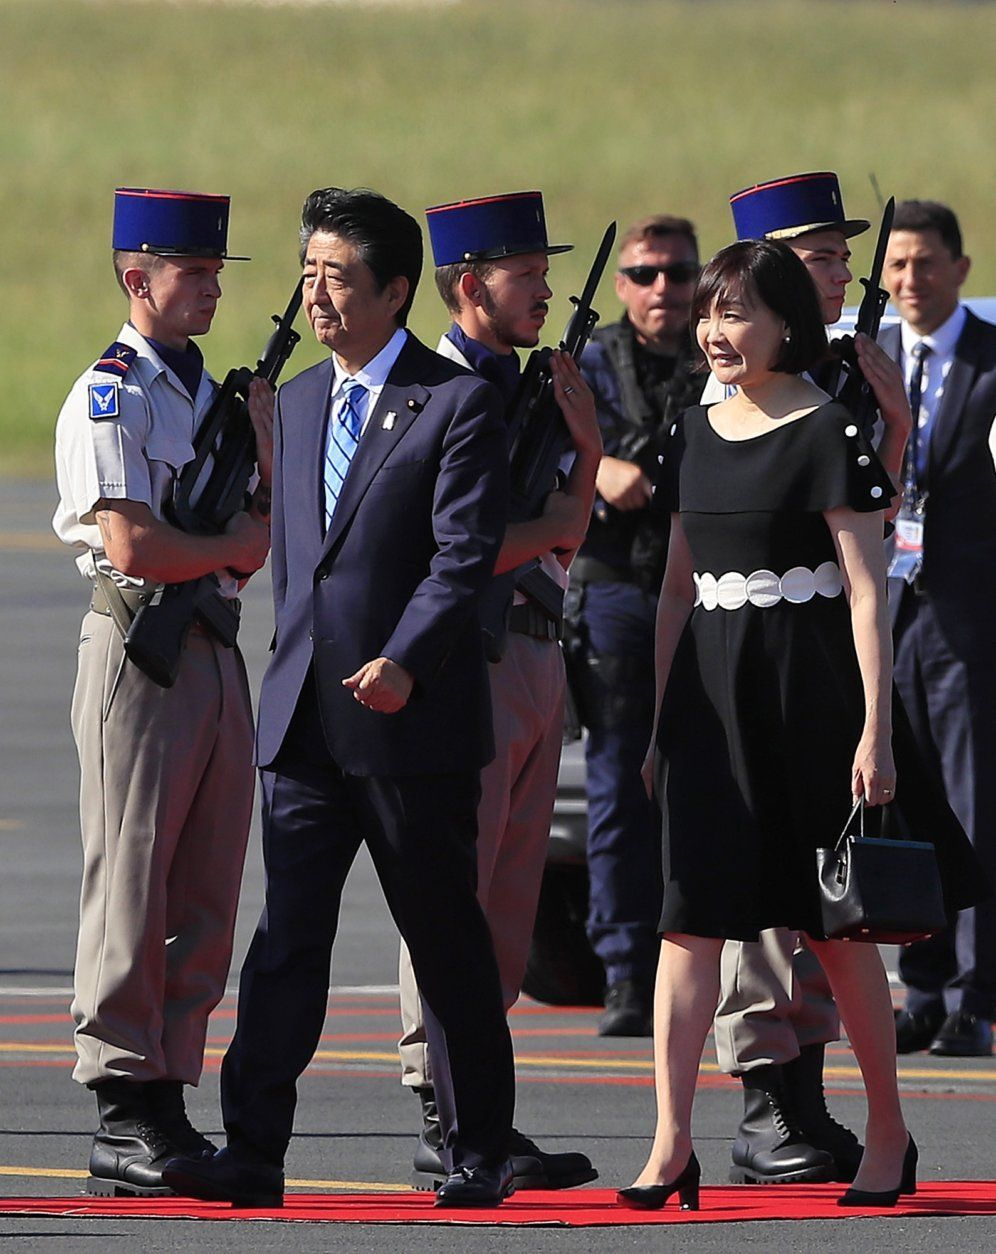 Japanese Prime Minister Shinzo Abe and his wife Akie Abe arrive at the airport in Biarritz, France, for the first day of the G-7 summit, Saturday, Aug. 24, 2019. U.S. President Donald Trump and the six other leaders of the Group of Seven nations will begin meeting Saturday for three days in the southwestern French resort town of Biarritz. France holds the 2019 presidency of the G-7, which also includes Britain, Canada, Germany, Italy and Japan. (AP Photo/Peter Dejong)